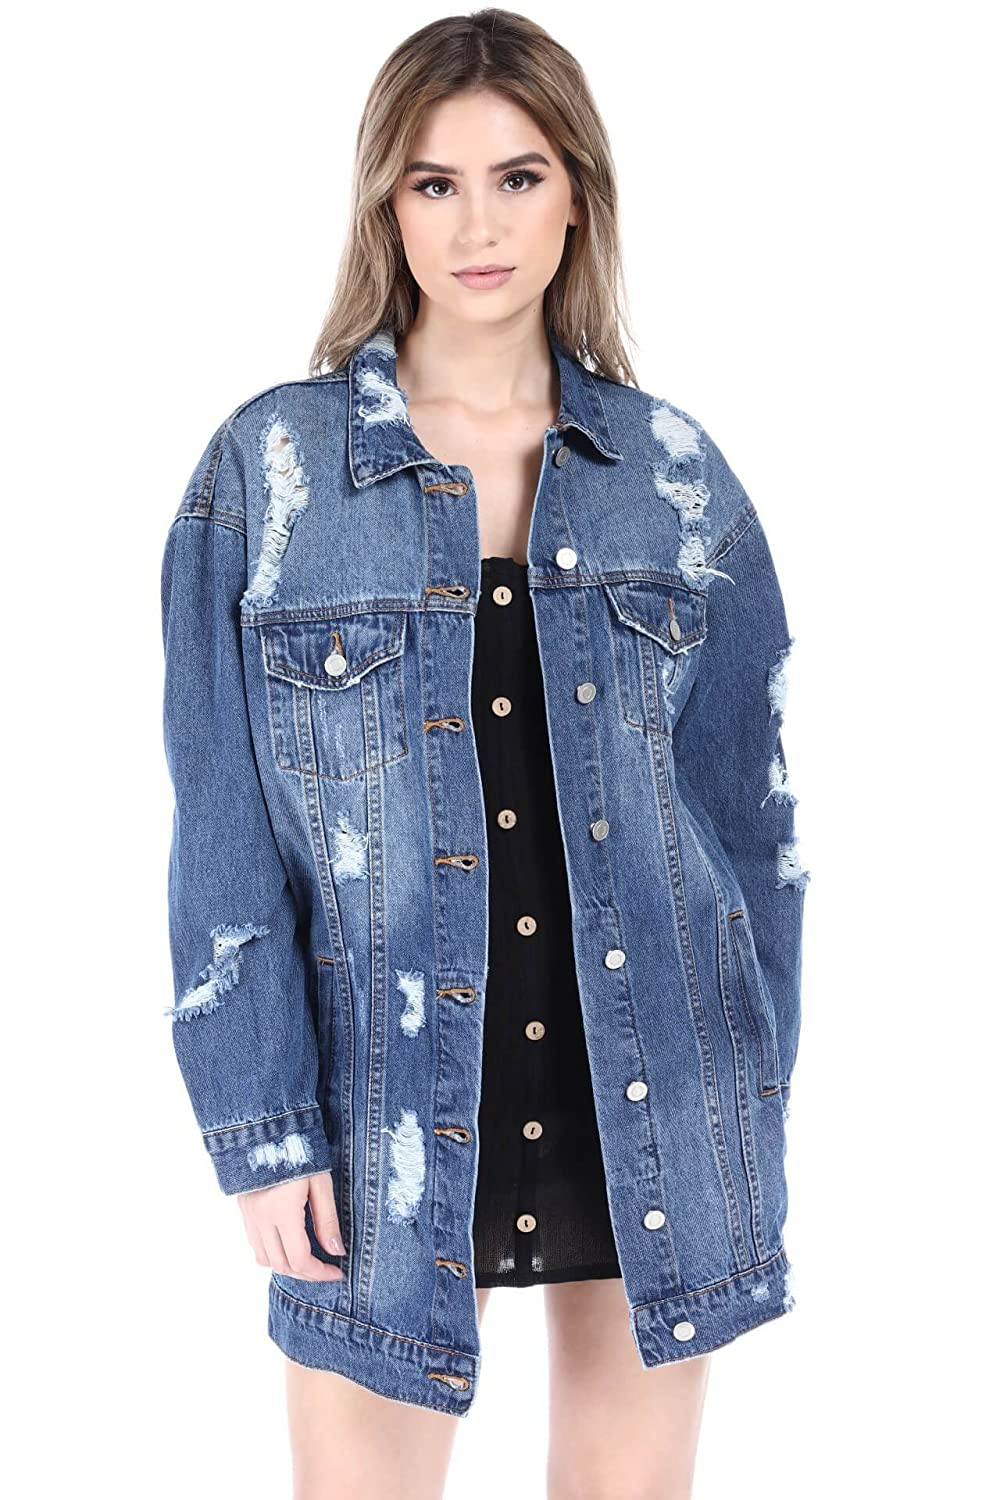 SALT TREE The Blue Jean Women's Destroyed Boyfriend Over Sized Denim Jacket